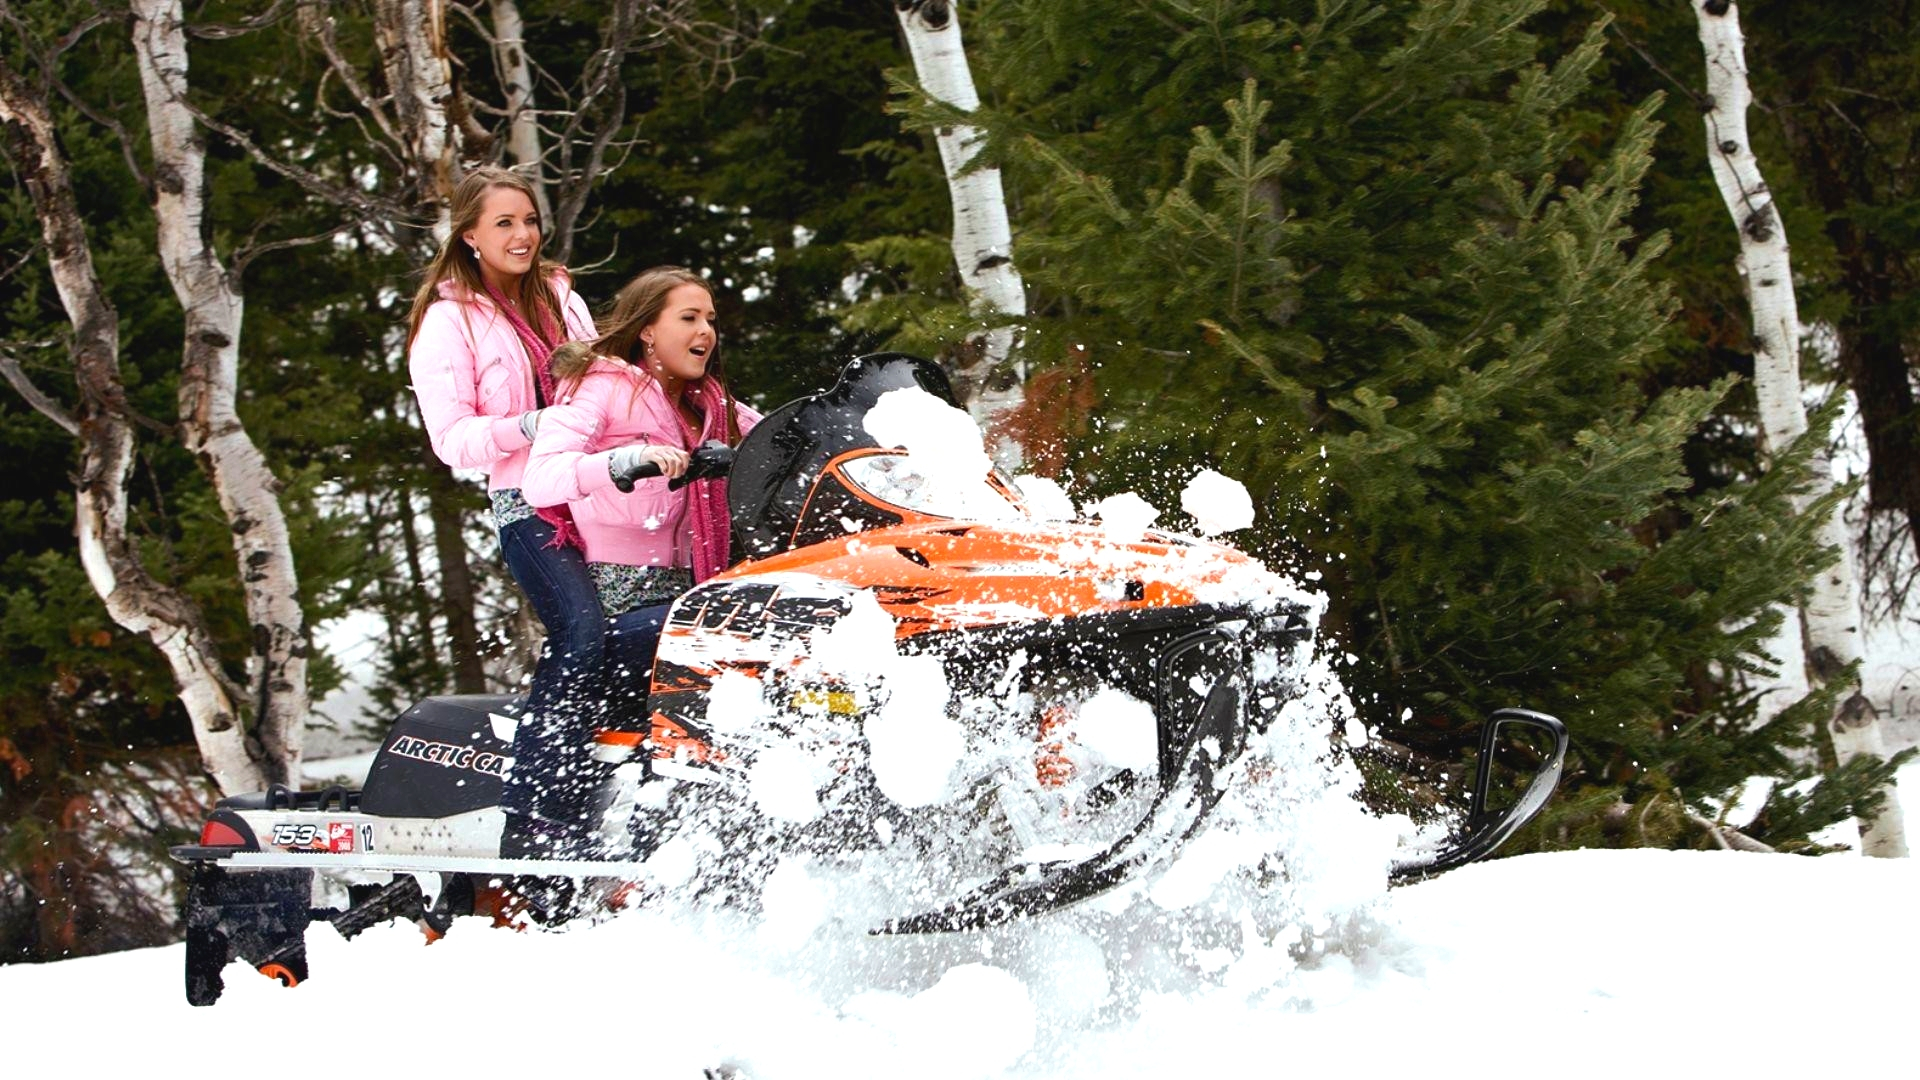 Snowmobiling images